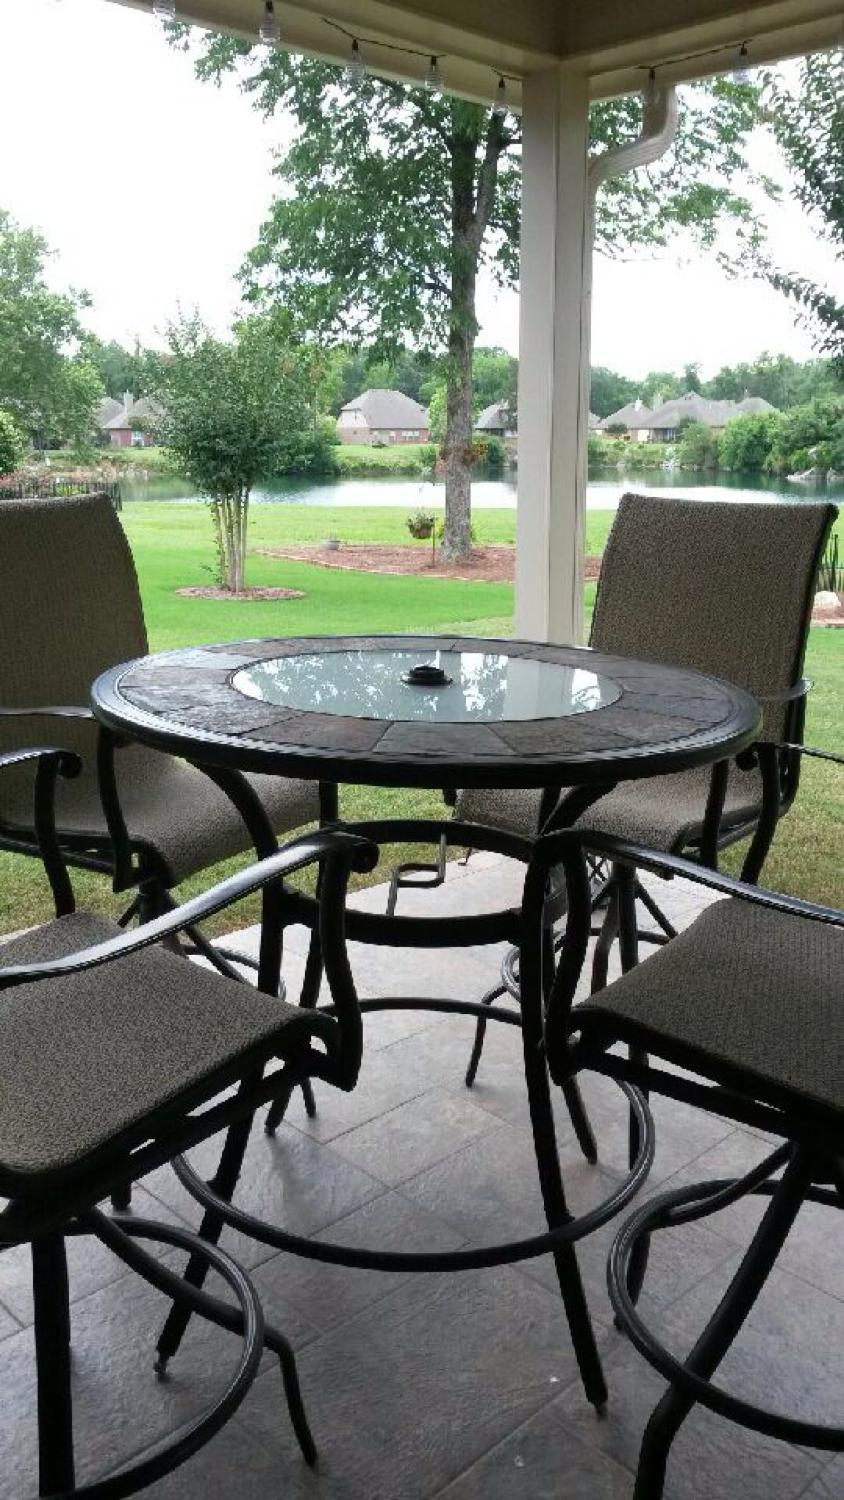 Find More Allen Amp Roth Safford Bar Table And 4 Chairs For